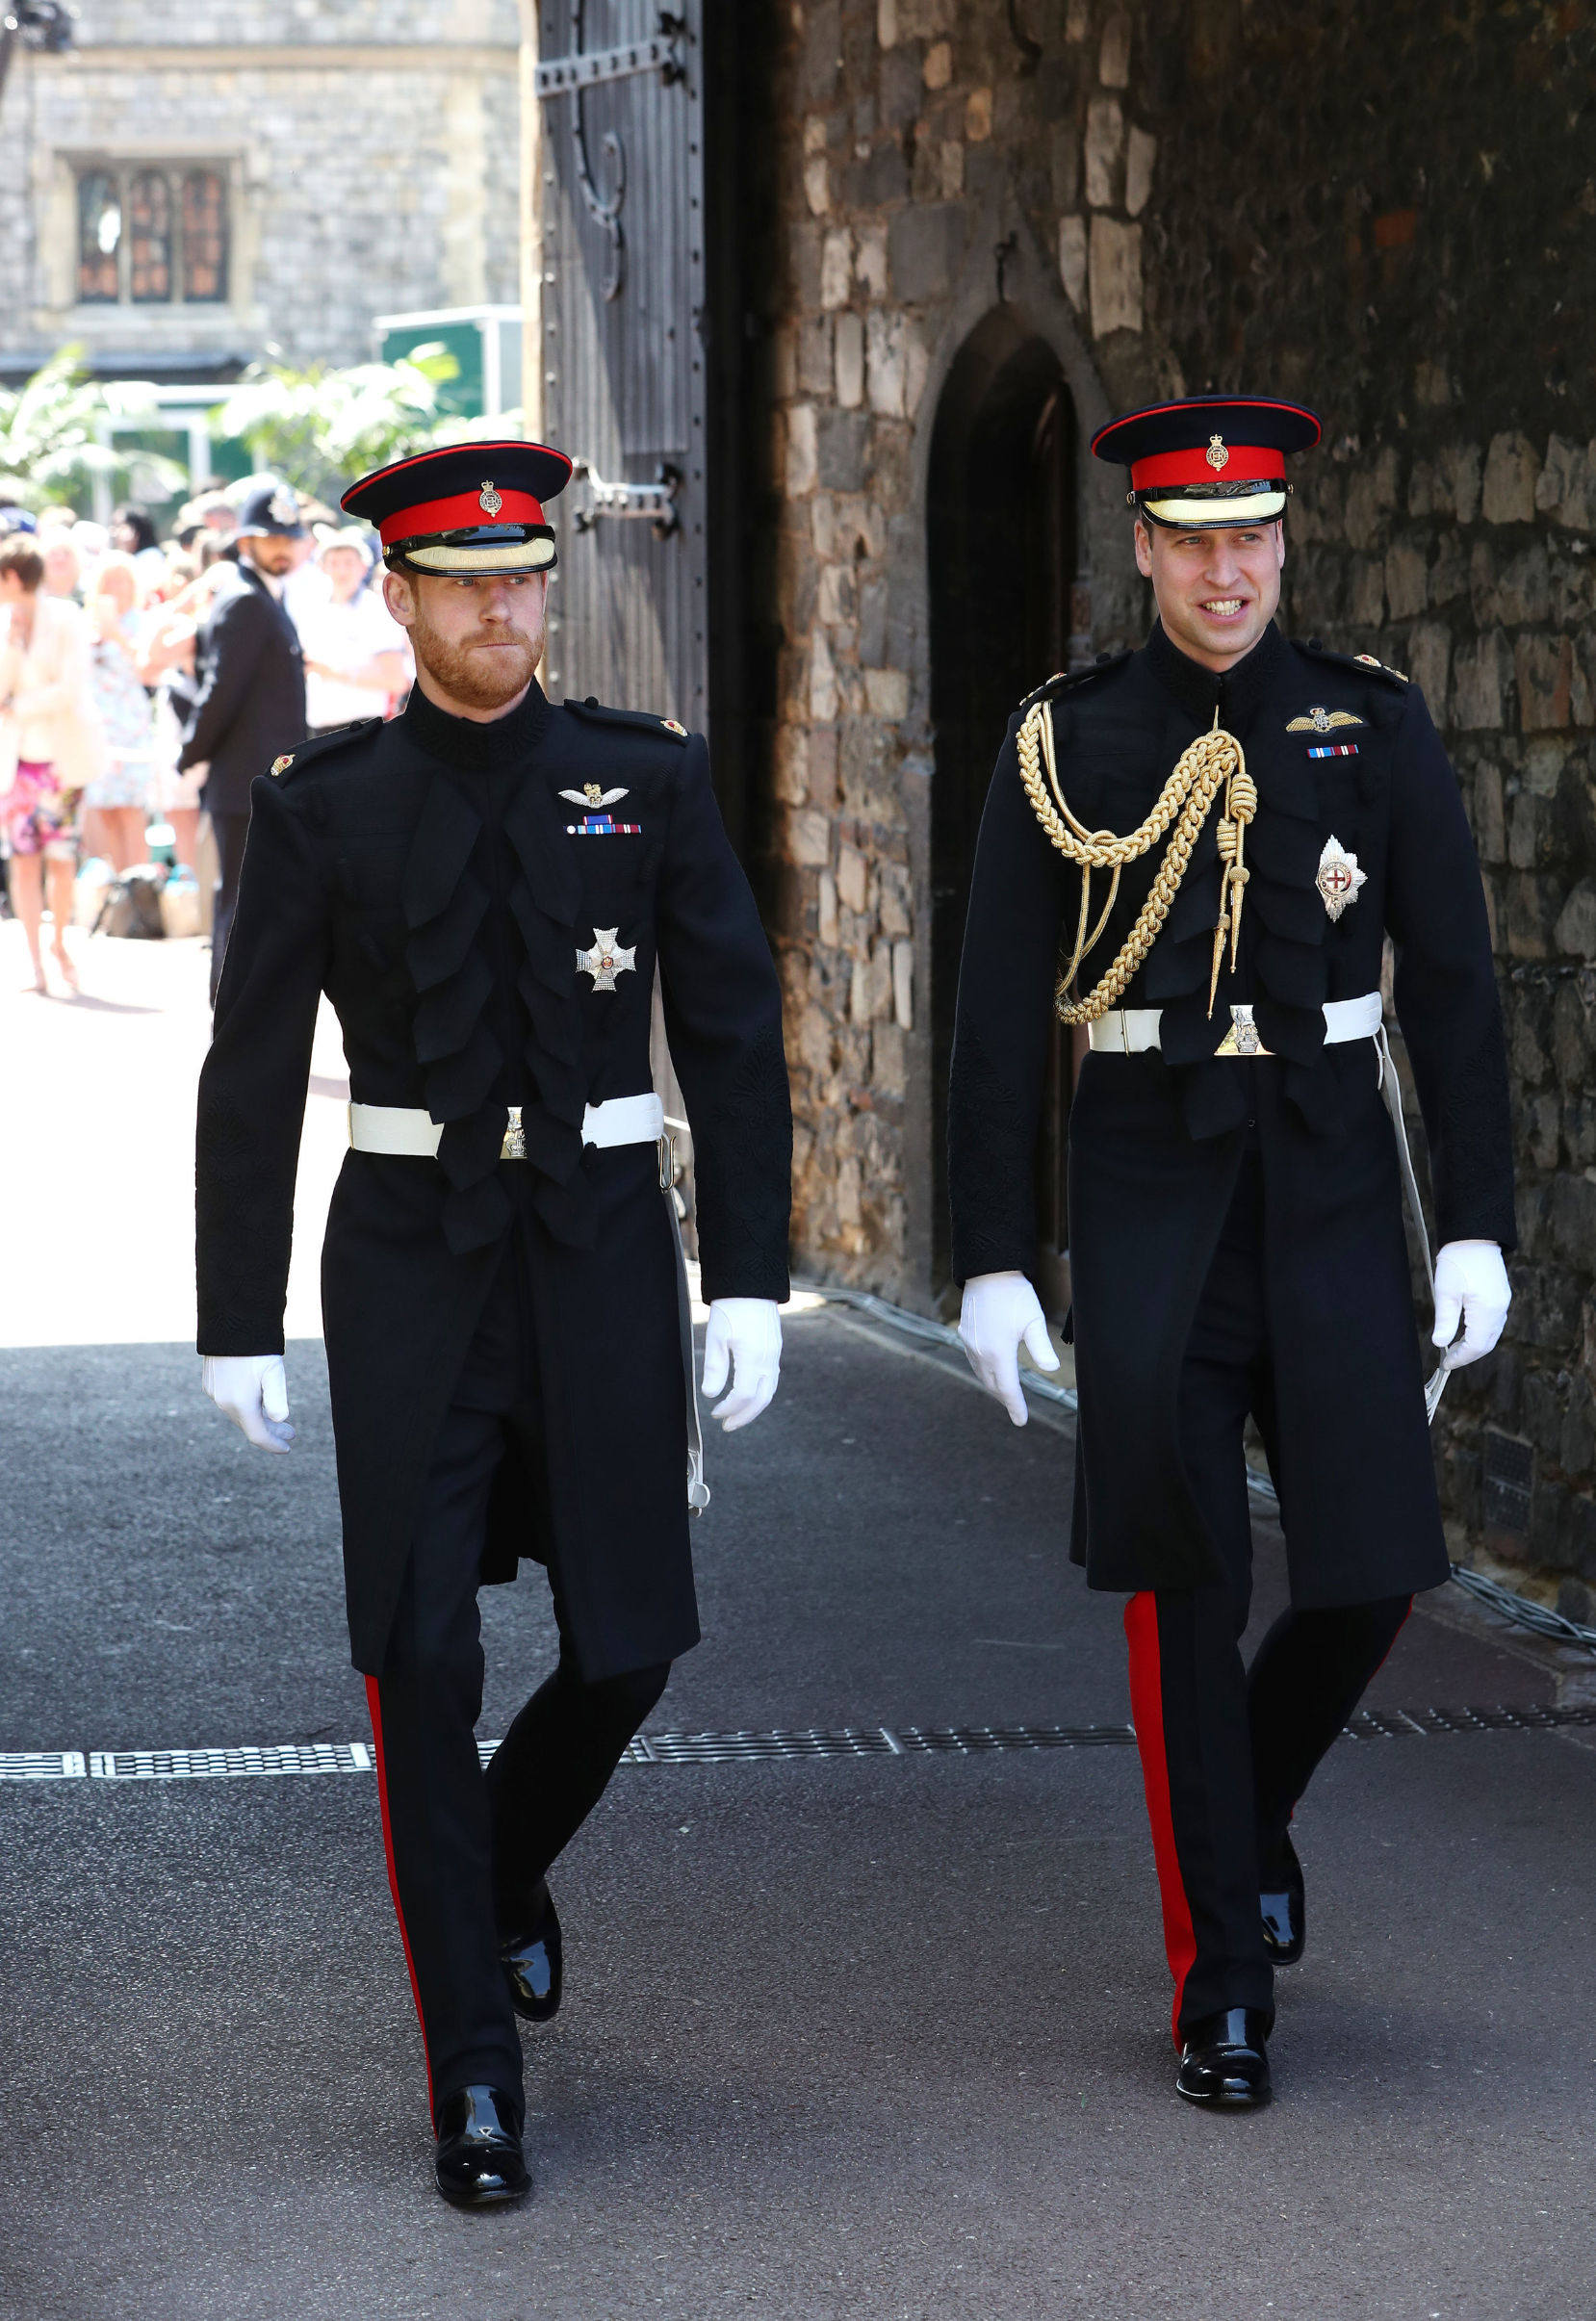 WINDSOR, UNITED KINGDOM - MAY 19:  Prince Harry (left) walks with his best man, Prince William Duke of Cambridge, as he arrives at St George's Chapel at Windsor Castle for his wedding to Meghan Markle, on May 19, 2018 in Windsor, England. (Photo by Brian Lawless - WPA Pool/Getty Images)